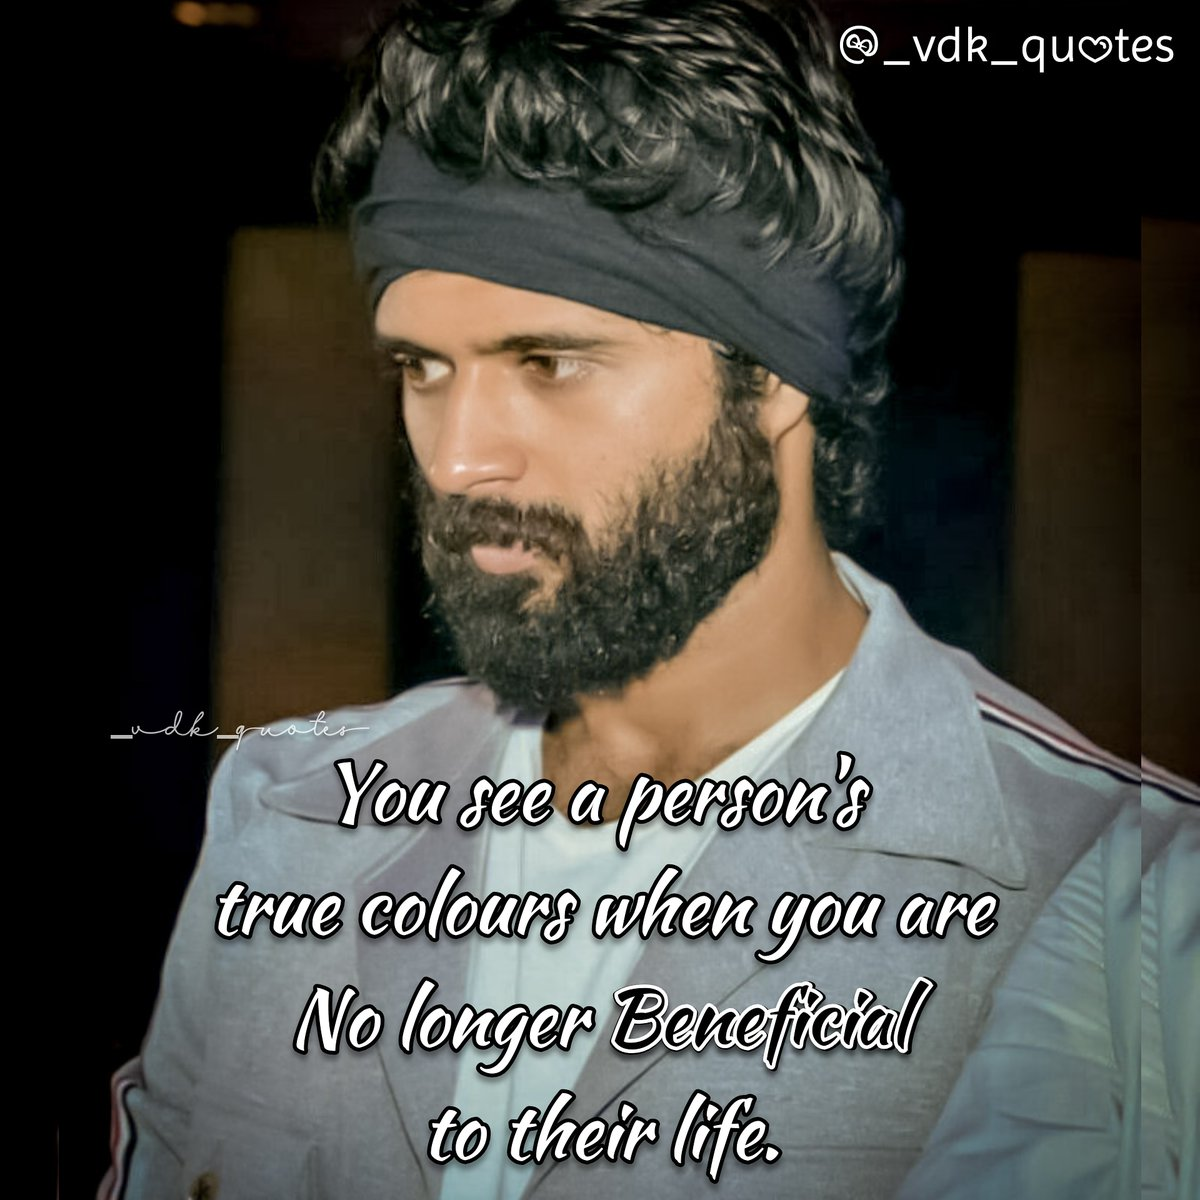 When you are no longer BENEFICIAL @TheDeverakonda  #VijayDeverakonda  #DearComradeTrendOnJuly25th  #quoteoftheday  @ChSree3pic.twitter.com/6Ty5FV7pJl